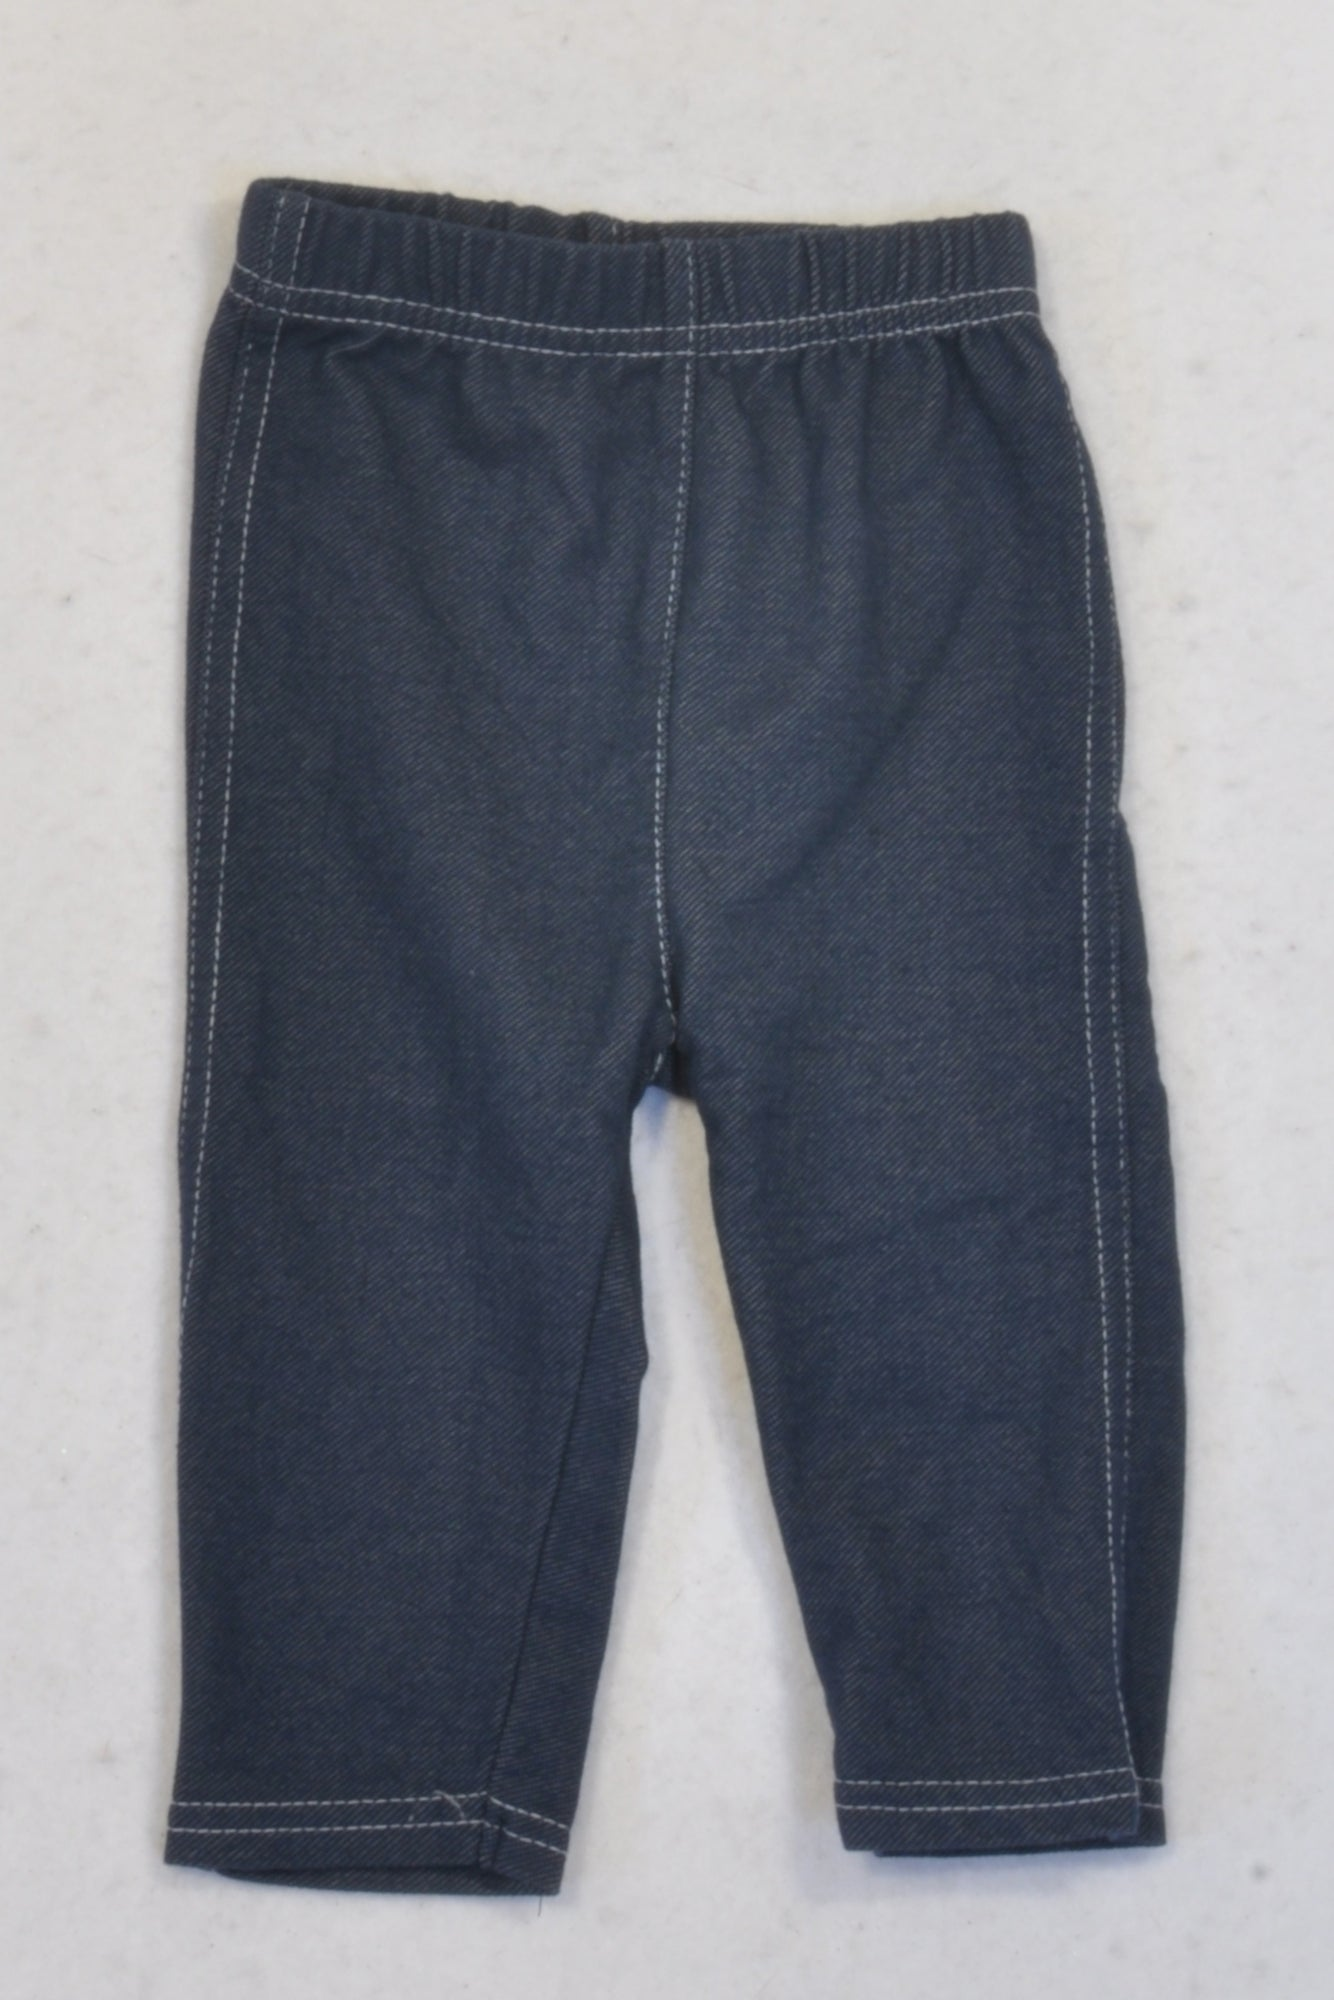 Ackermans Dark Blue White Stitched Jeggings Girls 3-6 months